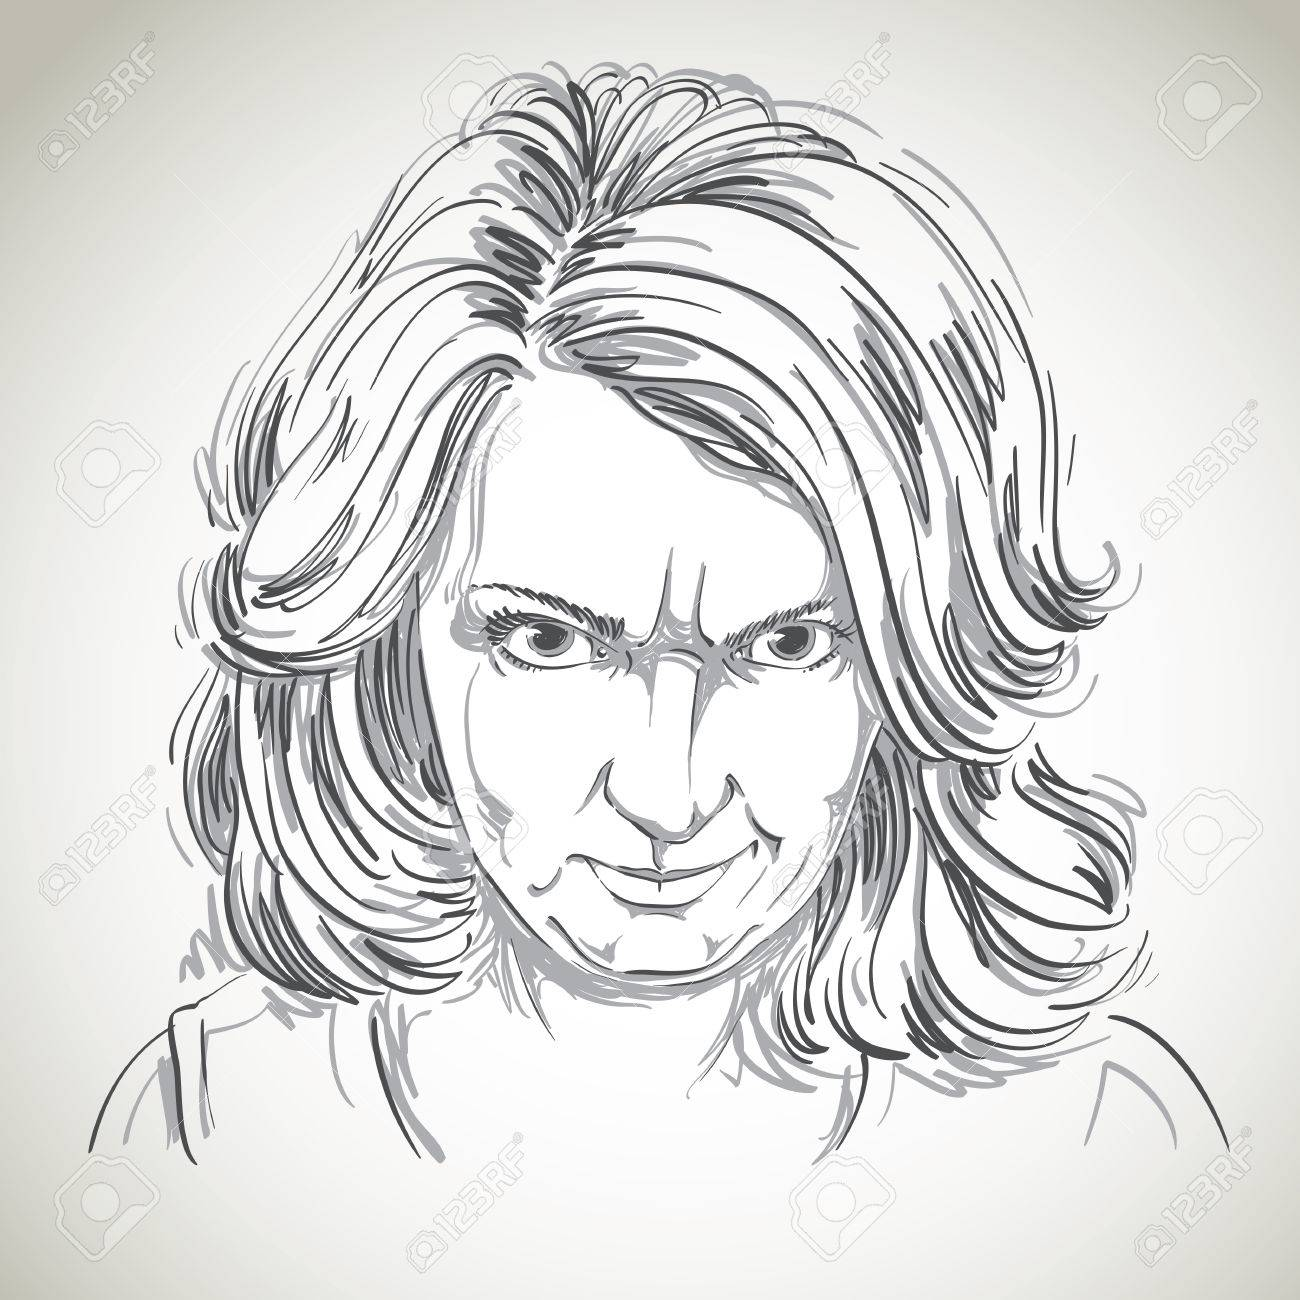 1300x1300 Hand Drawn Portrait Of White Skin Arrogant Woman With Wrinkles